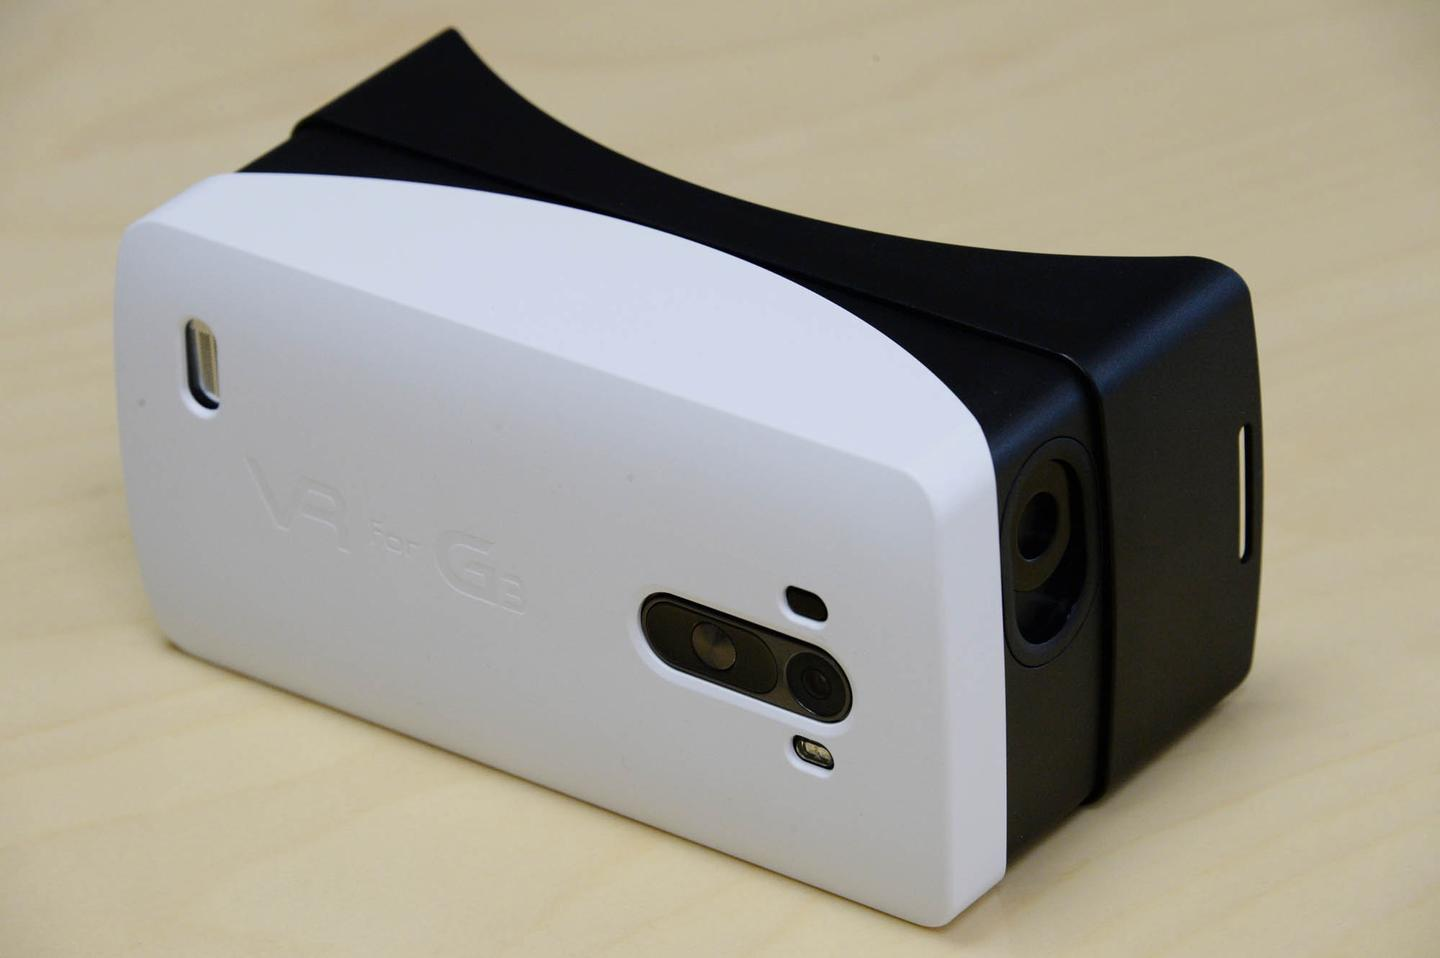 Assembled VR for G3 headset, with G3 inside